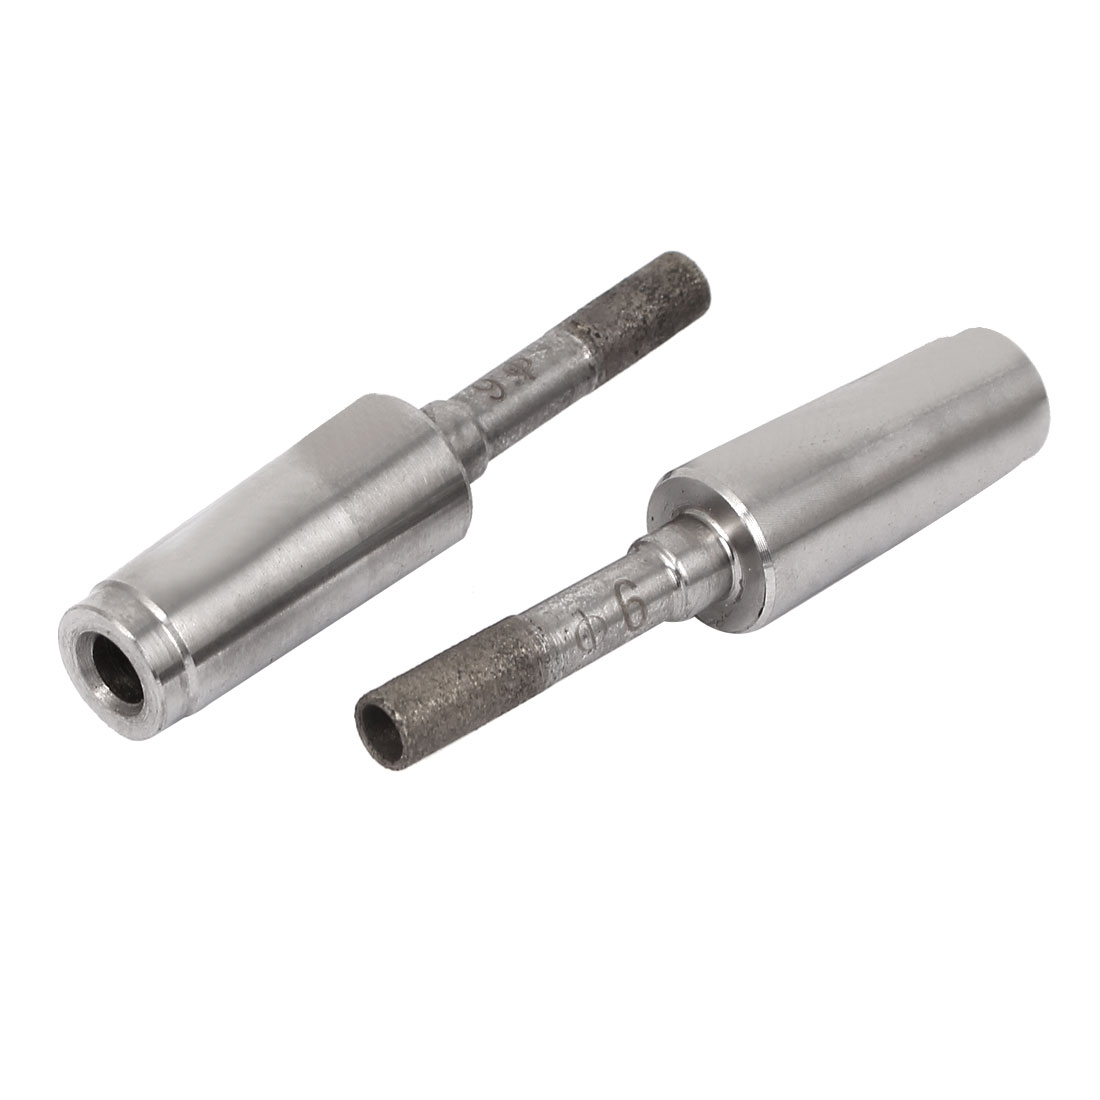 6mm Dia Diamond Sintered Bit Marble Tile Glass Hole Saw Cutter Tool 2 Pcs